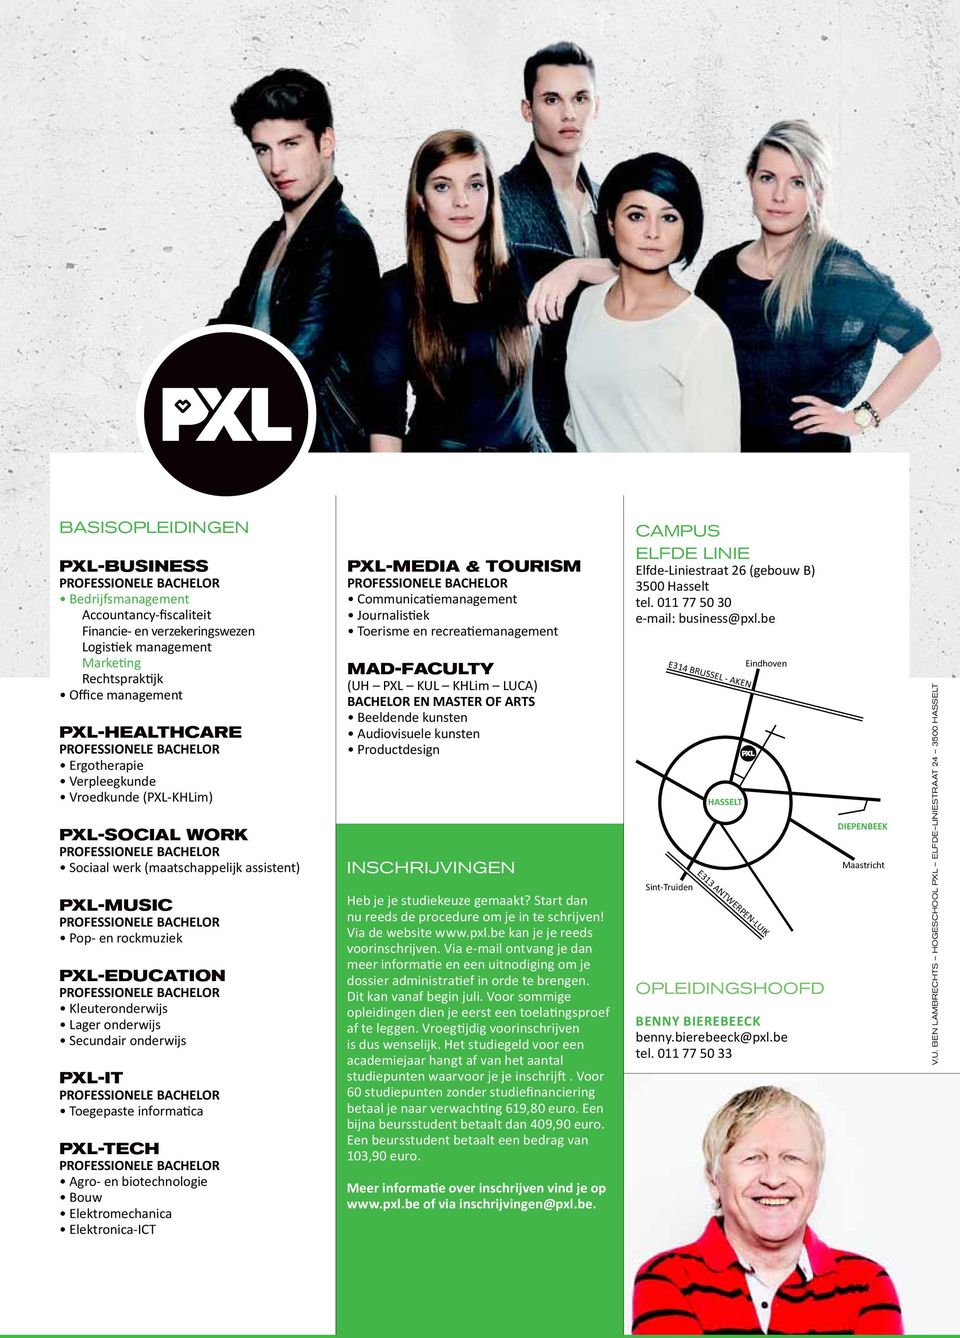 Toegepaste informatica PXL-TECH Agro- en biotechnologie Bouw Elektromechanica Elektronica-ICT PXL-MEDIA & TOURISM Communicatiemanagement Journalistiek Toerisme en recreatiemanagement MAD-FACULTY (UH